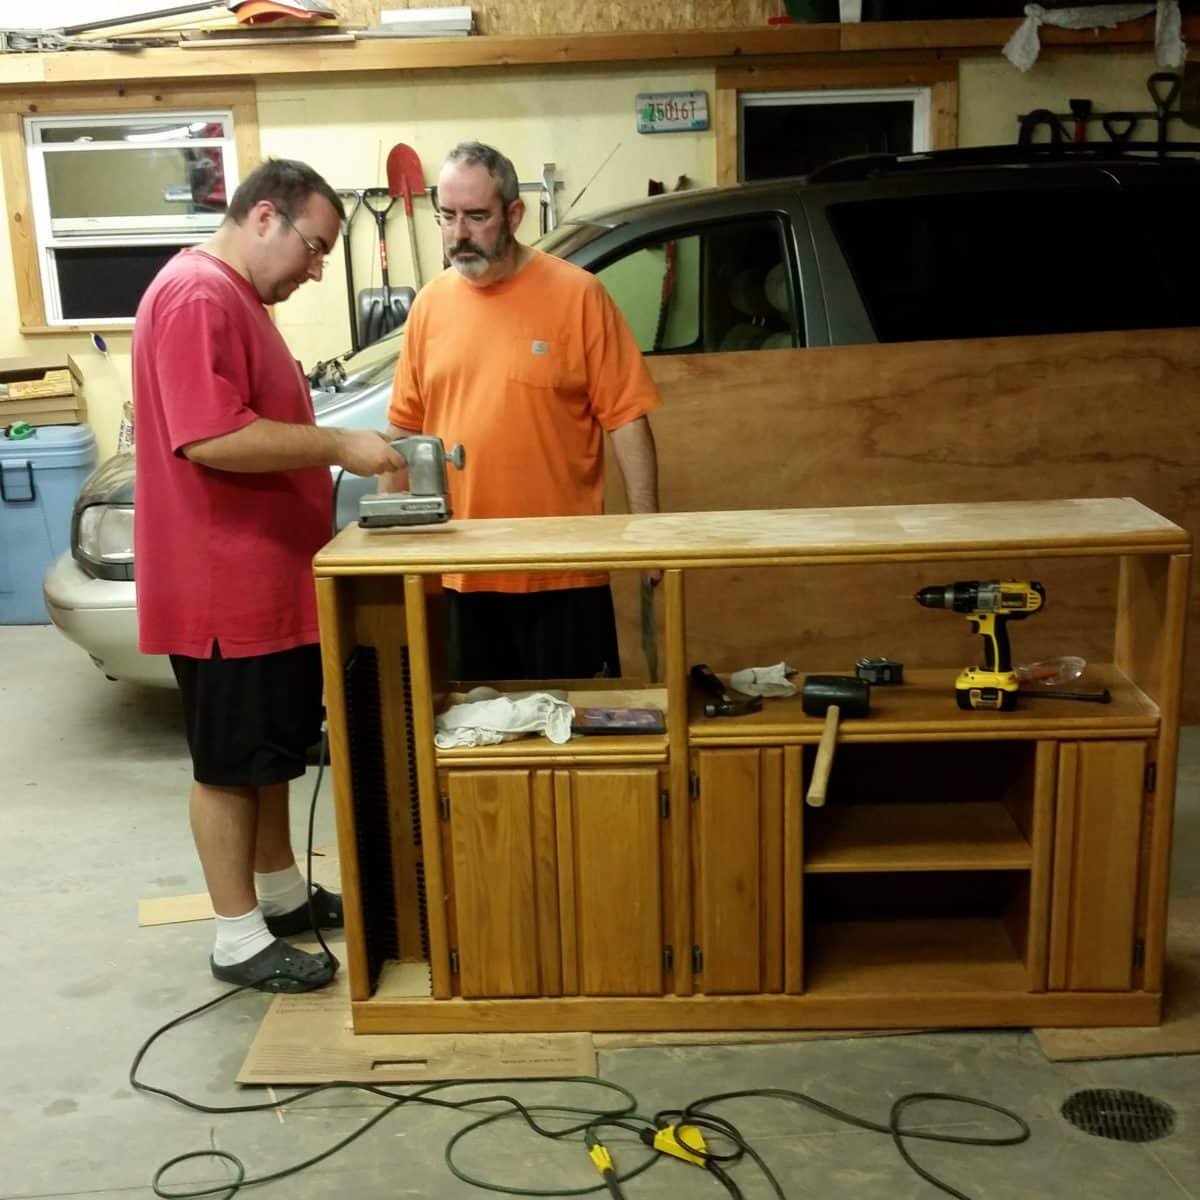 Rebuilding an old TV stand into a table to hold a larger flat screen TV